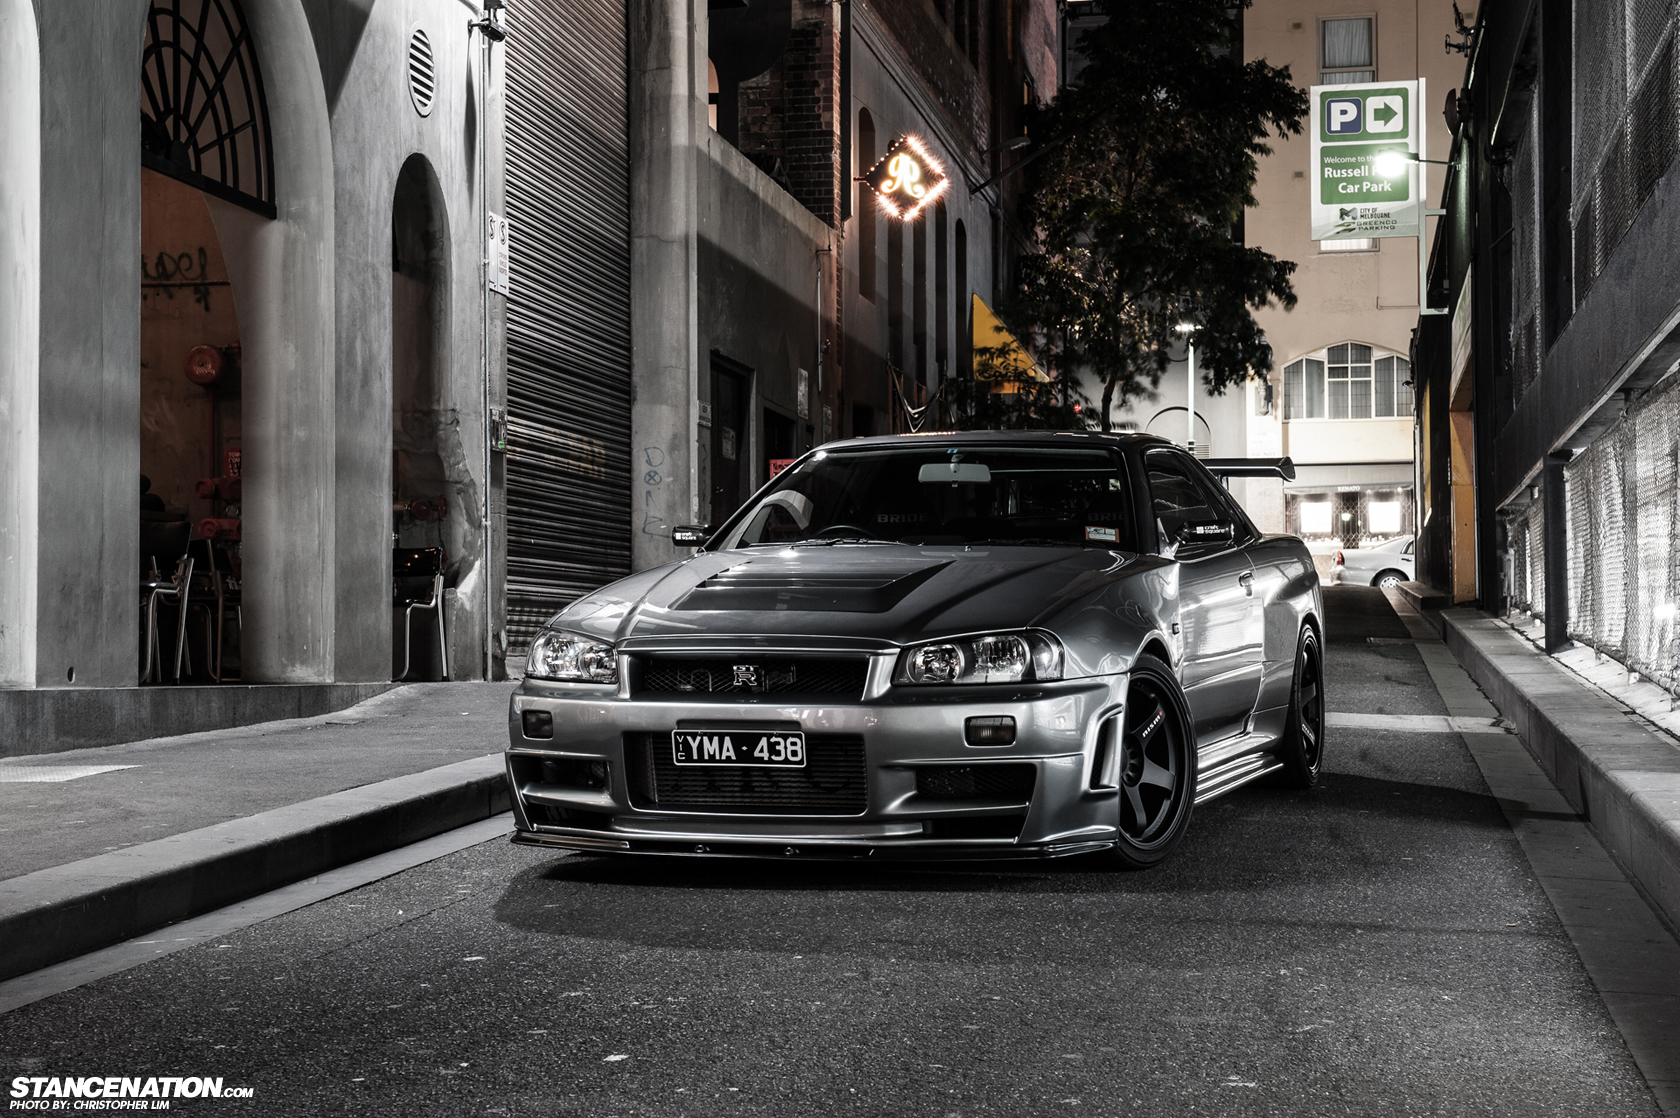 Jdm wallpaper tumblr jdm iphone wallpapers voltagebd Images